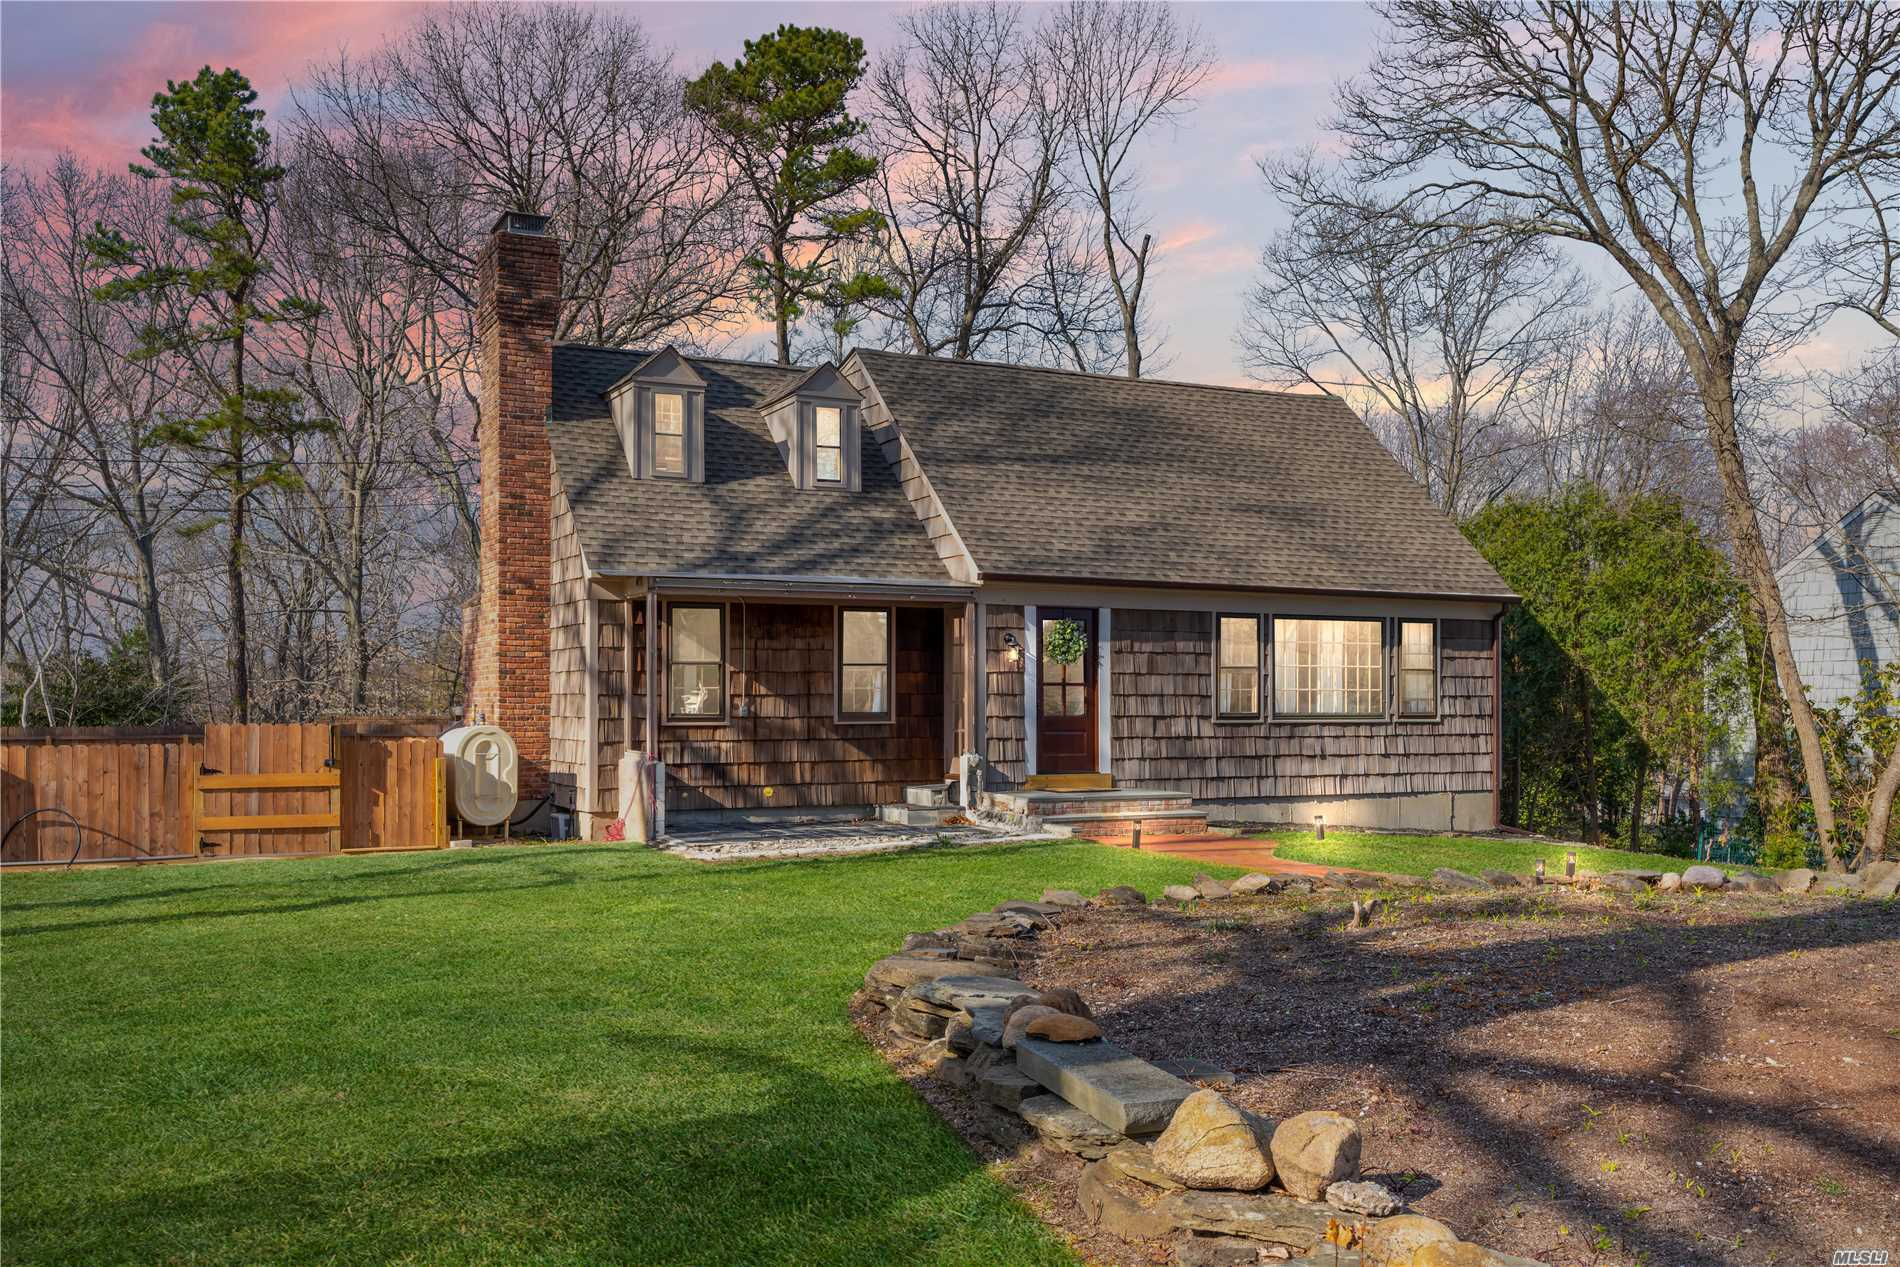 Step into this newly renovated 4 bedroom, 2 full bath expanded cape with a partially finished basement. This lovely turn key features gorgeous hardwood floors throughout and a fireplace within the open concept living room . Filled with charm and character including a farm house sink in updated Kitchen. A backyard made for entertaining with an in-ground pool. Peconic Bay Tax applies.